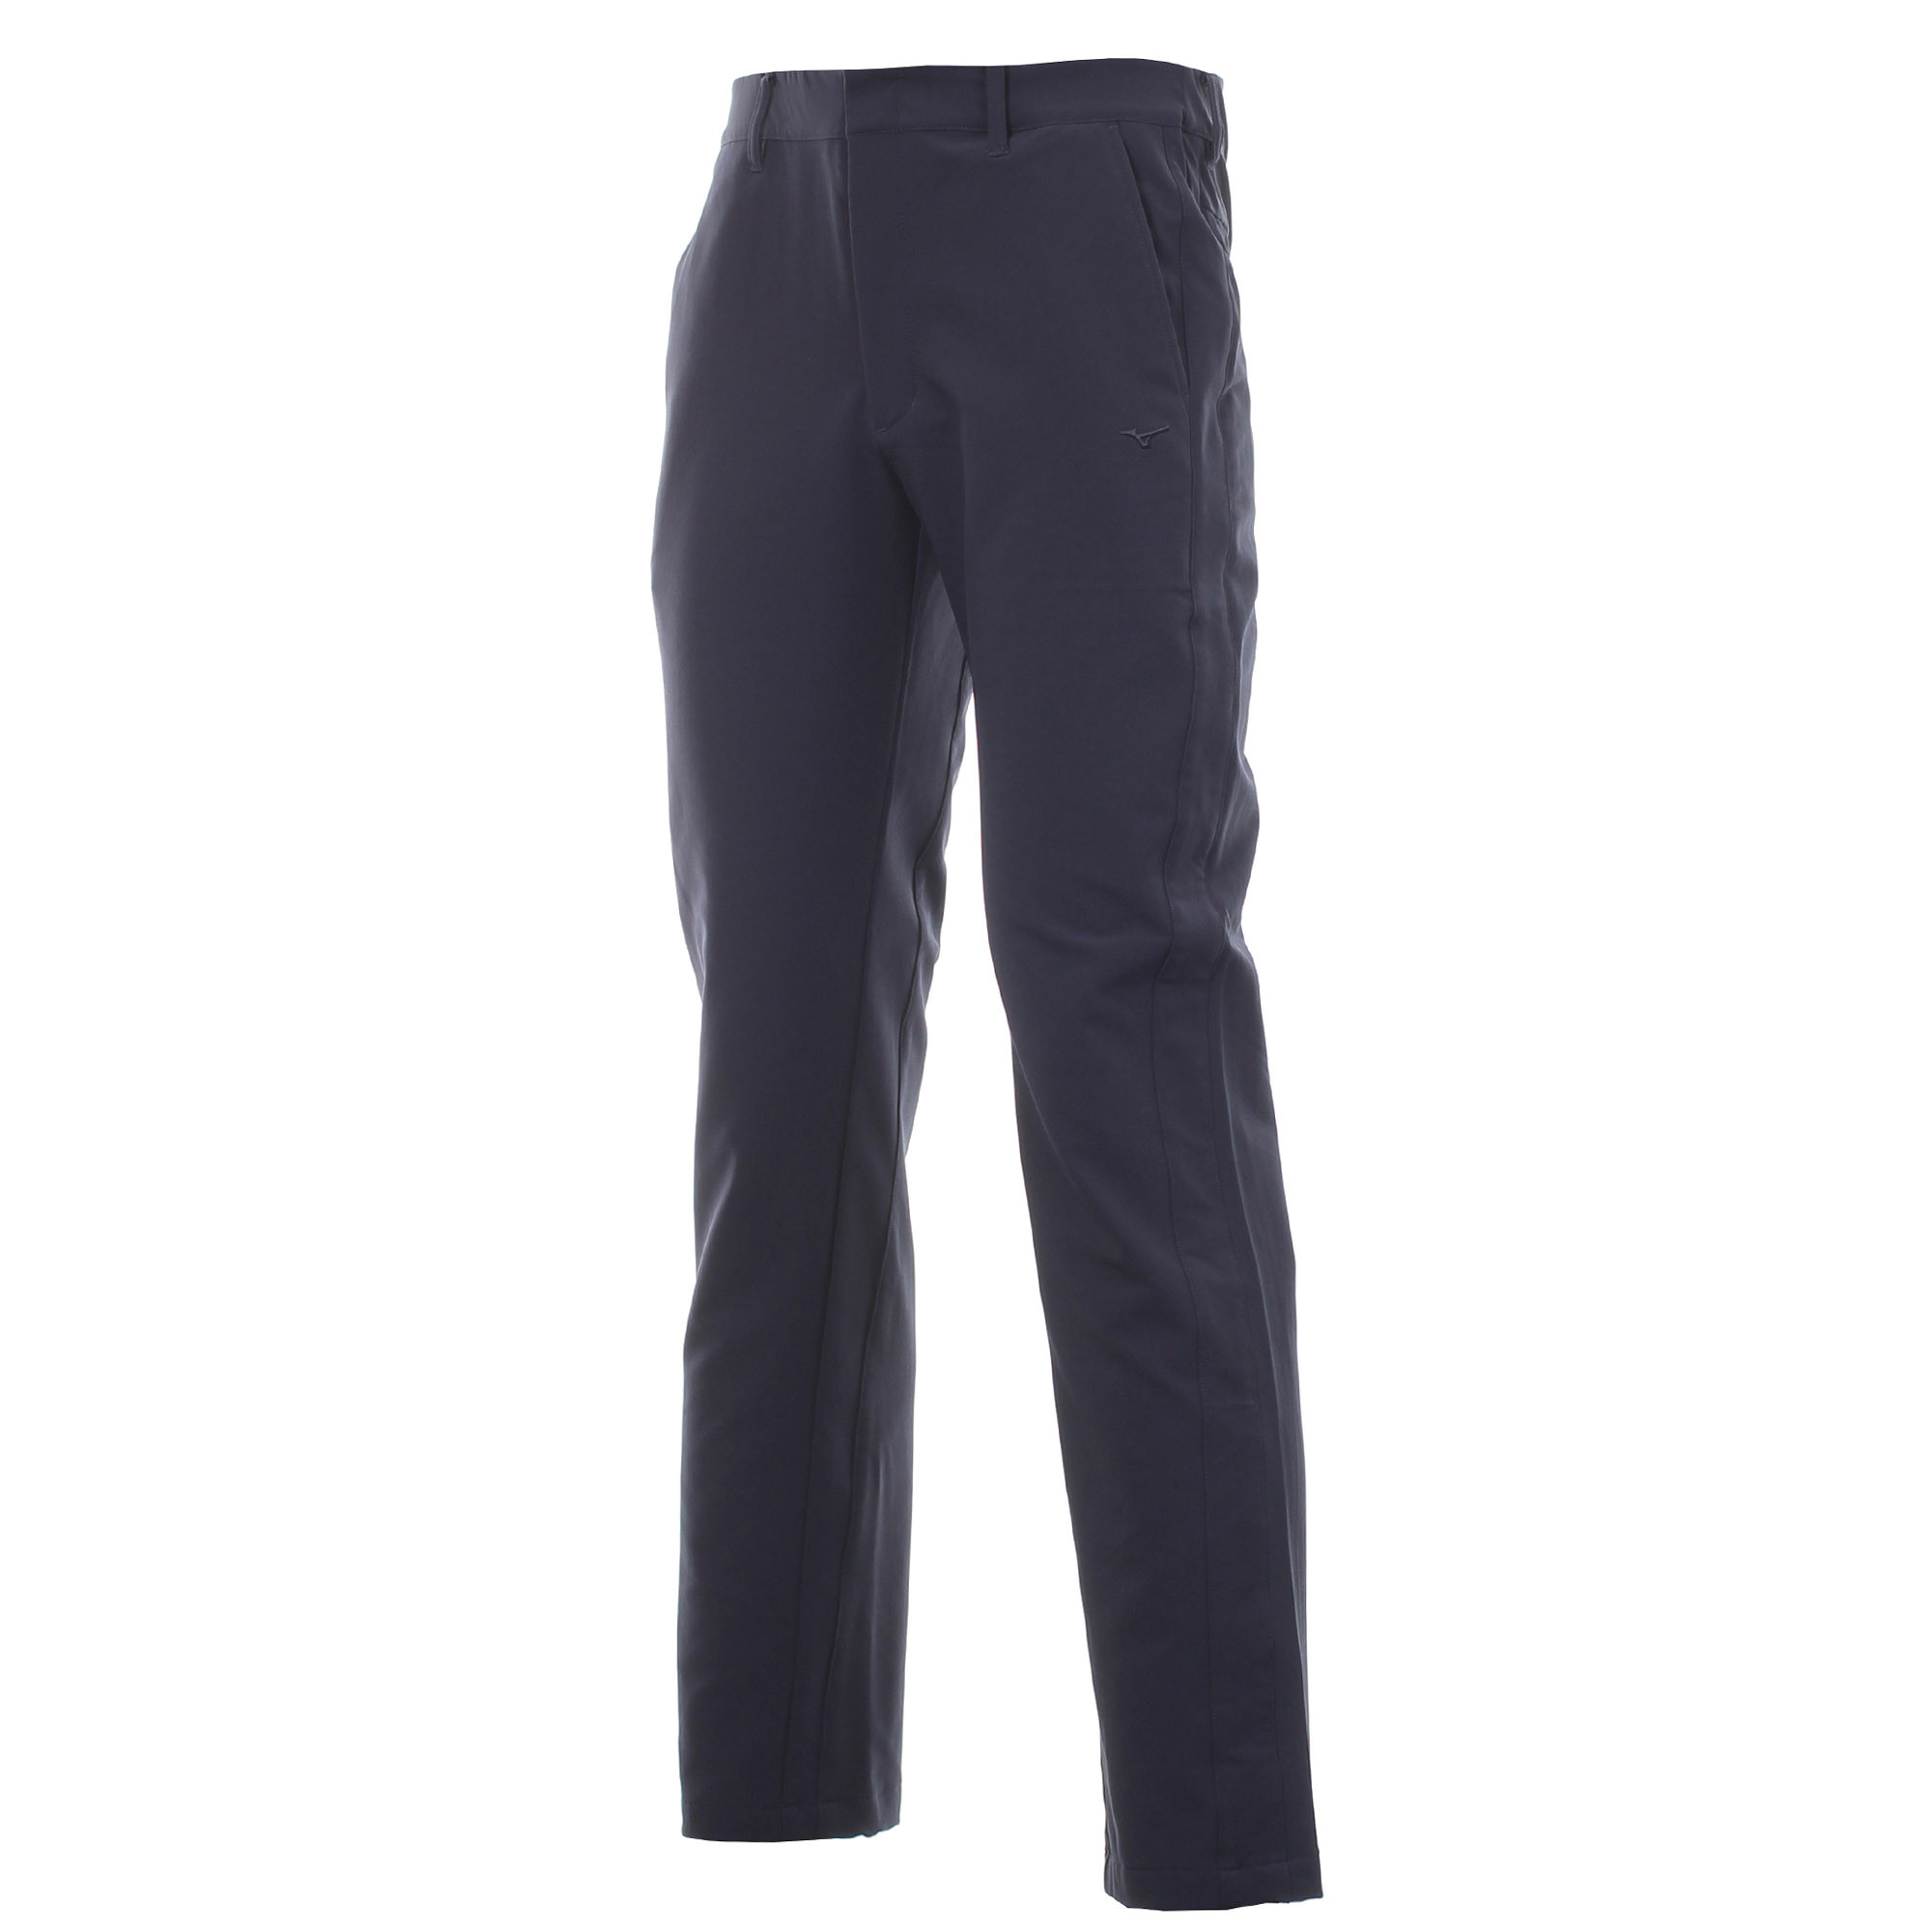 https://linkinggolf.com/quan-golf-nam-mizuno-move-pants-2-way-stretch-52mf800114-q128